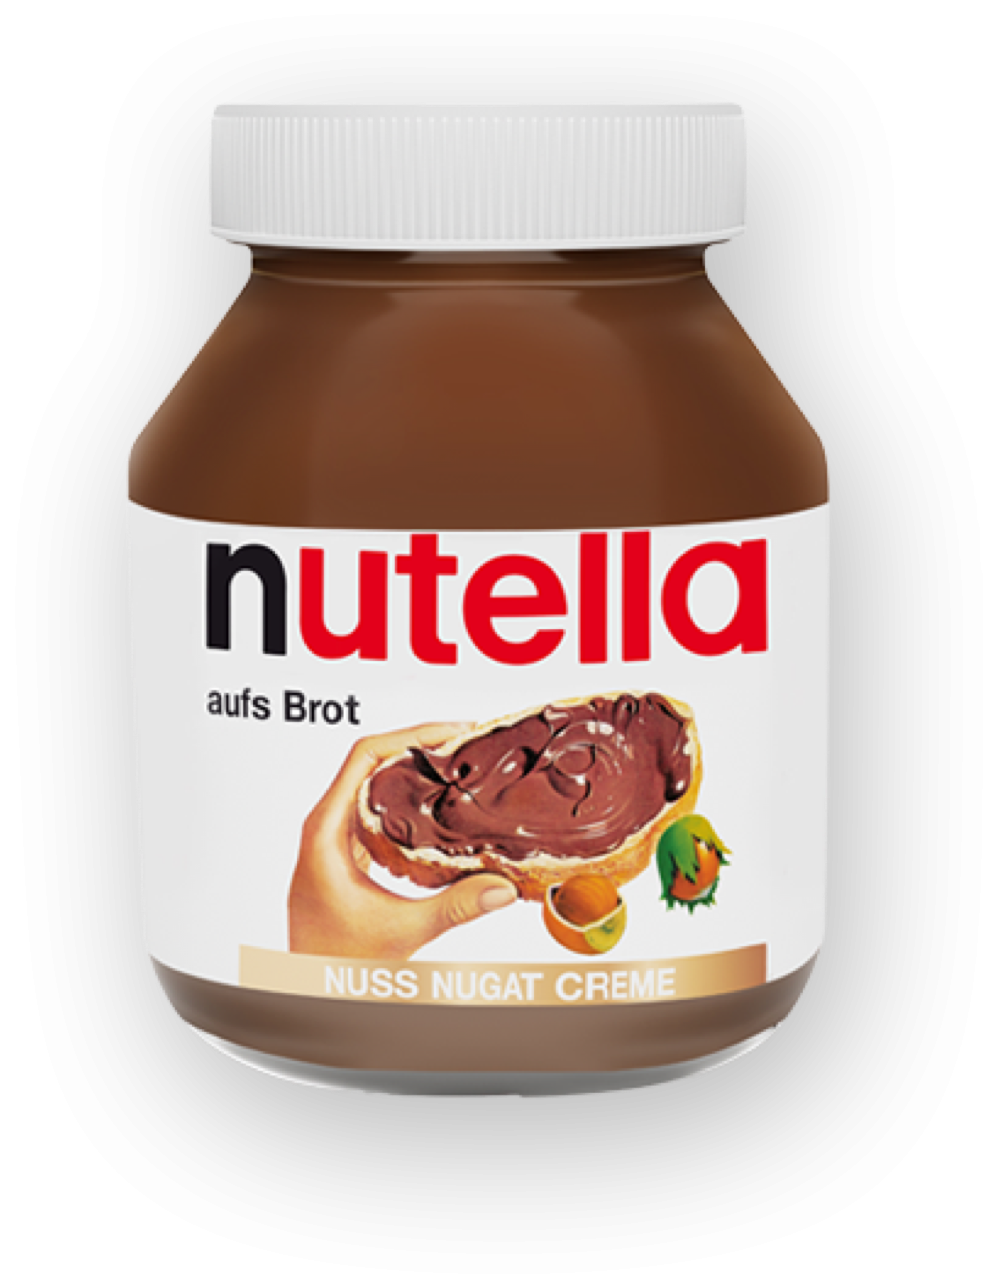 Our Iconic Jar | Nutella